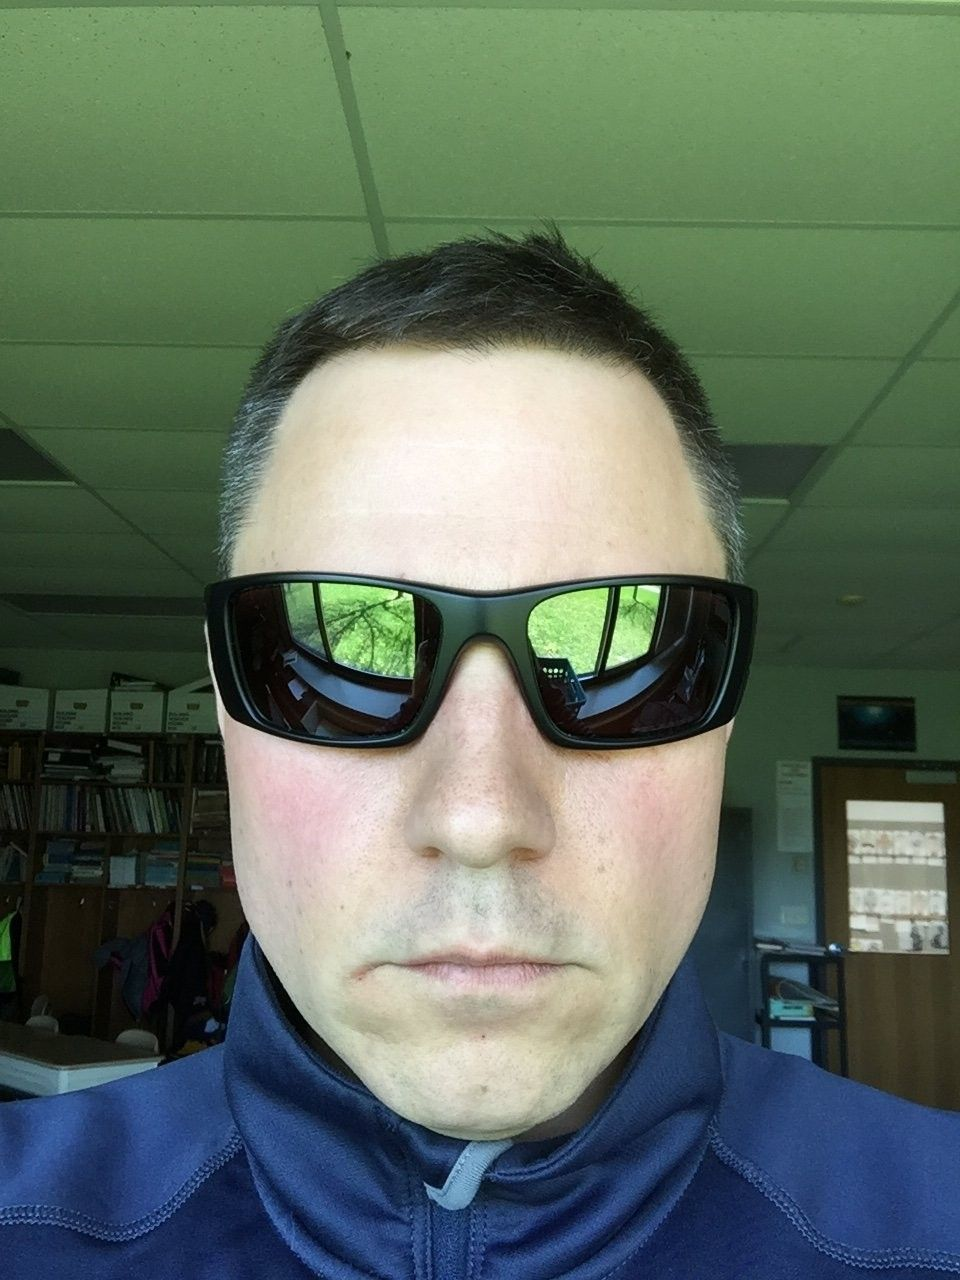 Need help with first pair of oakleys! - image.jpeg